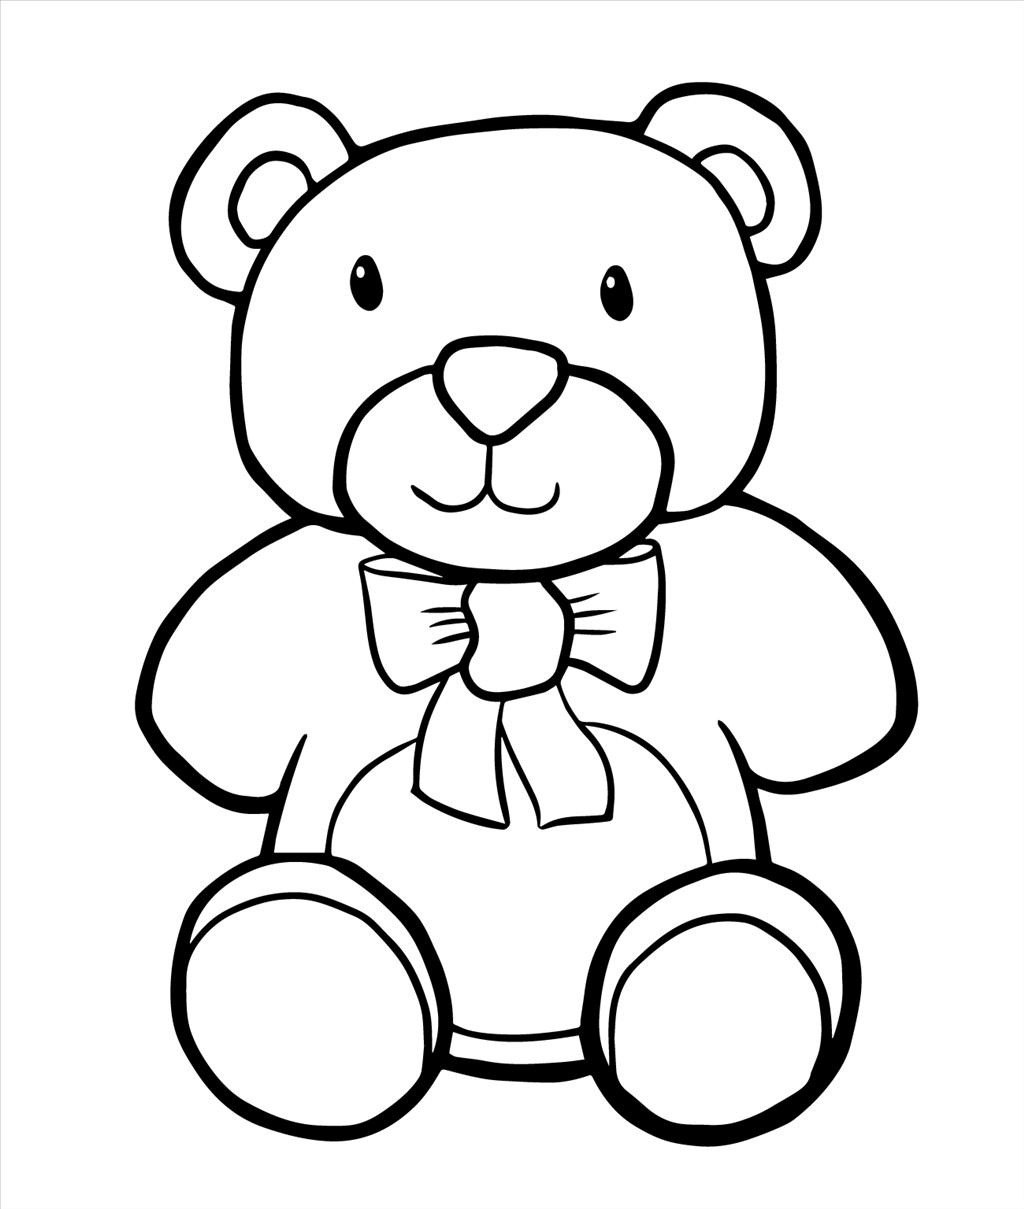 1024x1209 Ideal Teddy Bear Outline Photo Unknown Resolutions High